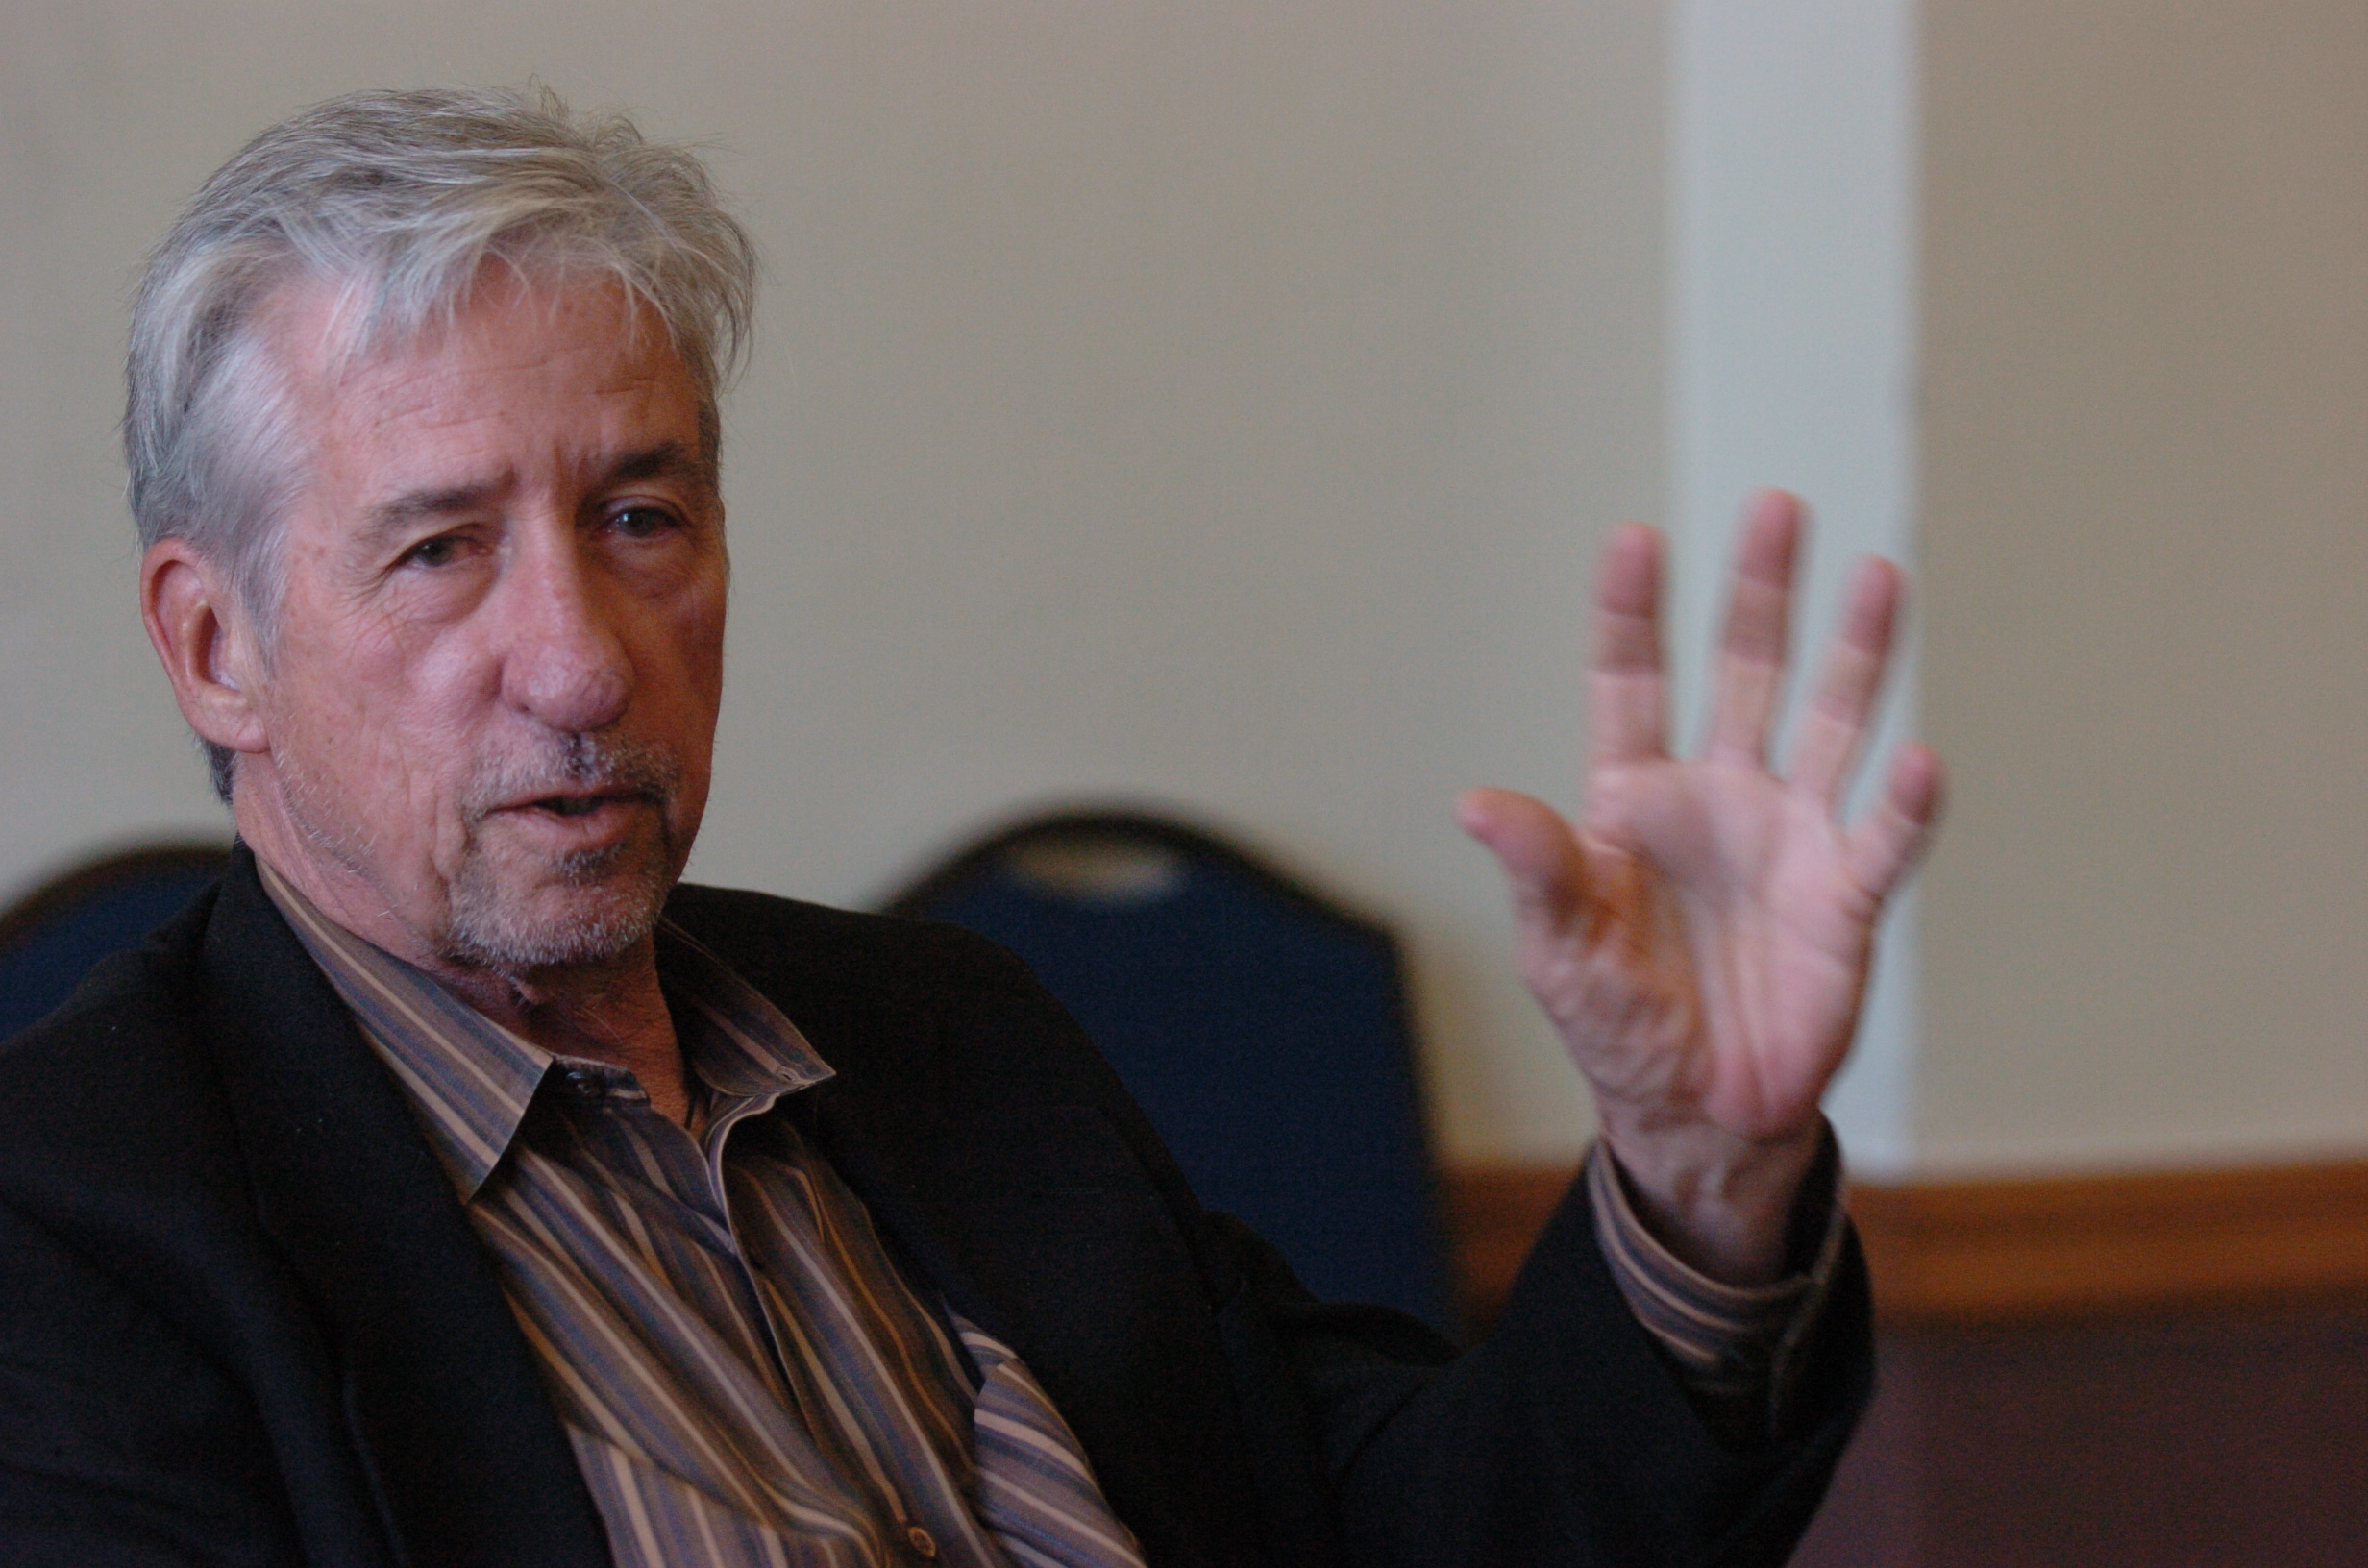 Tom Hayden Speaks at ACLU Meeting at University of Michigan on Iraq War, April 2007 image